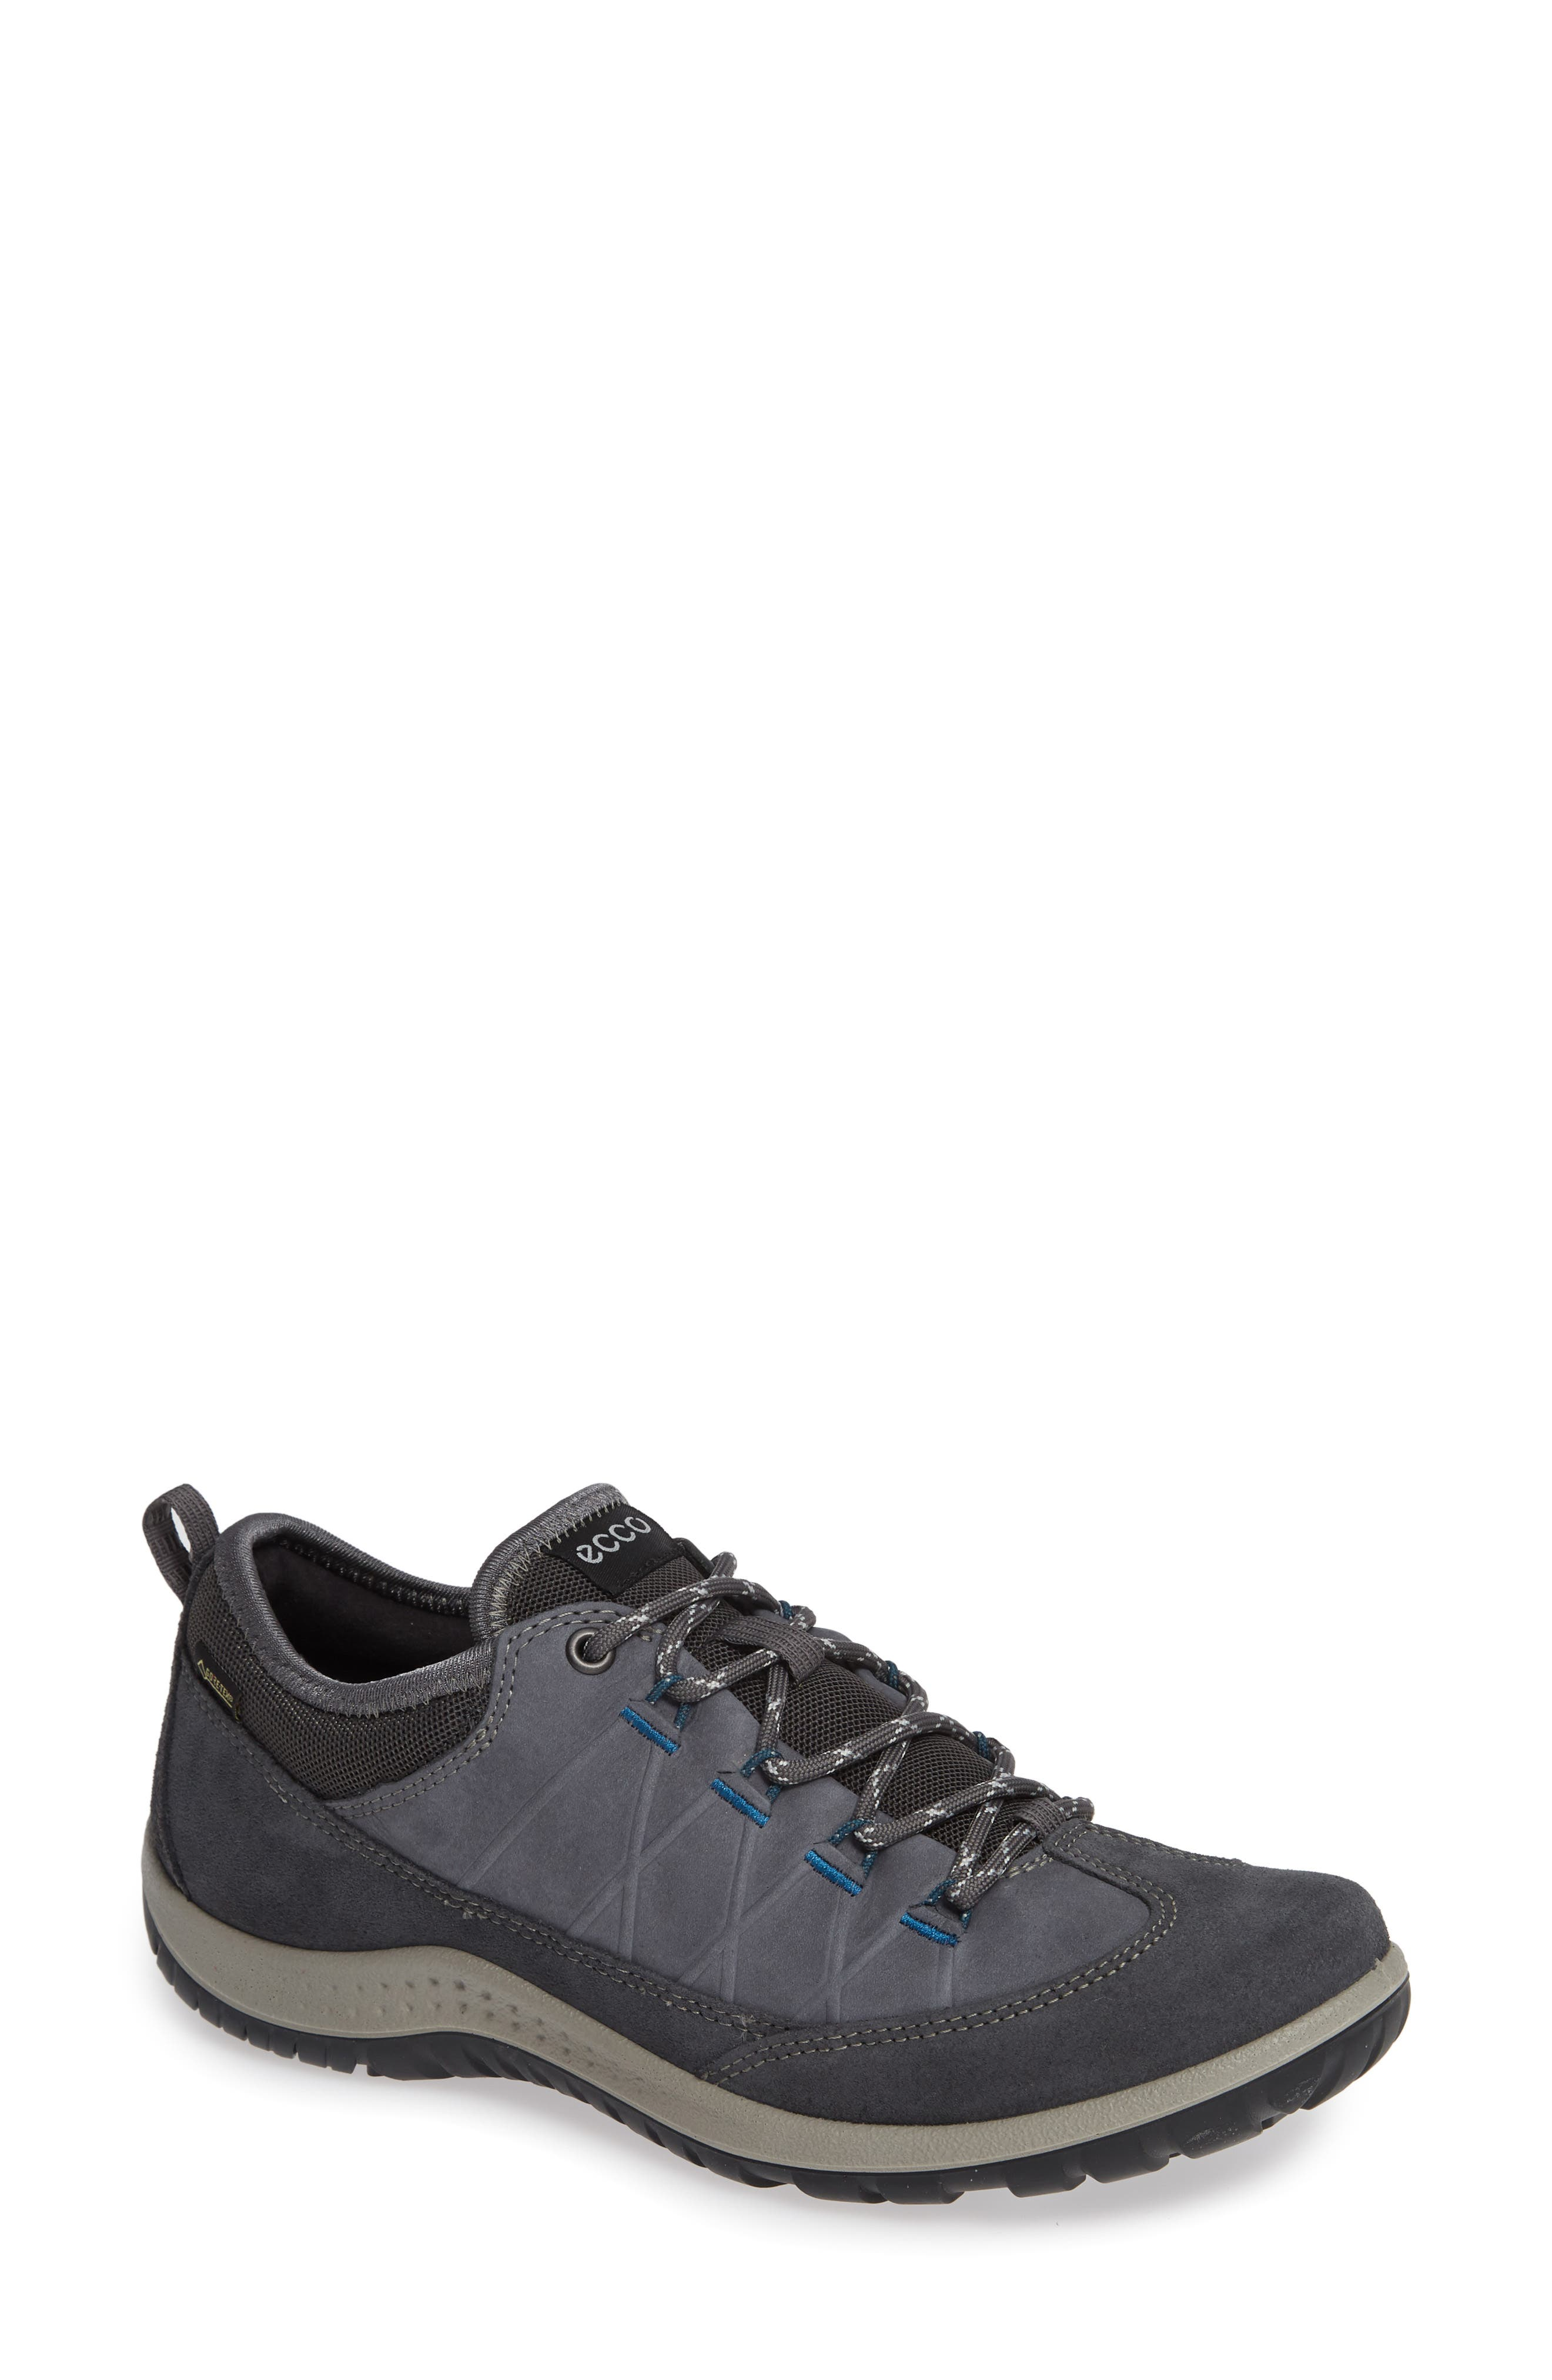 'Aspina GTX' Waterproof Sneaker,                             Main thumbnail 1, color,                             Magnet Nubuck Leather